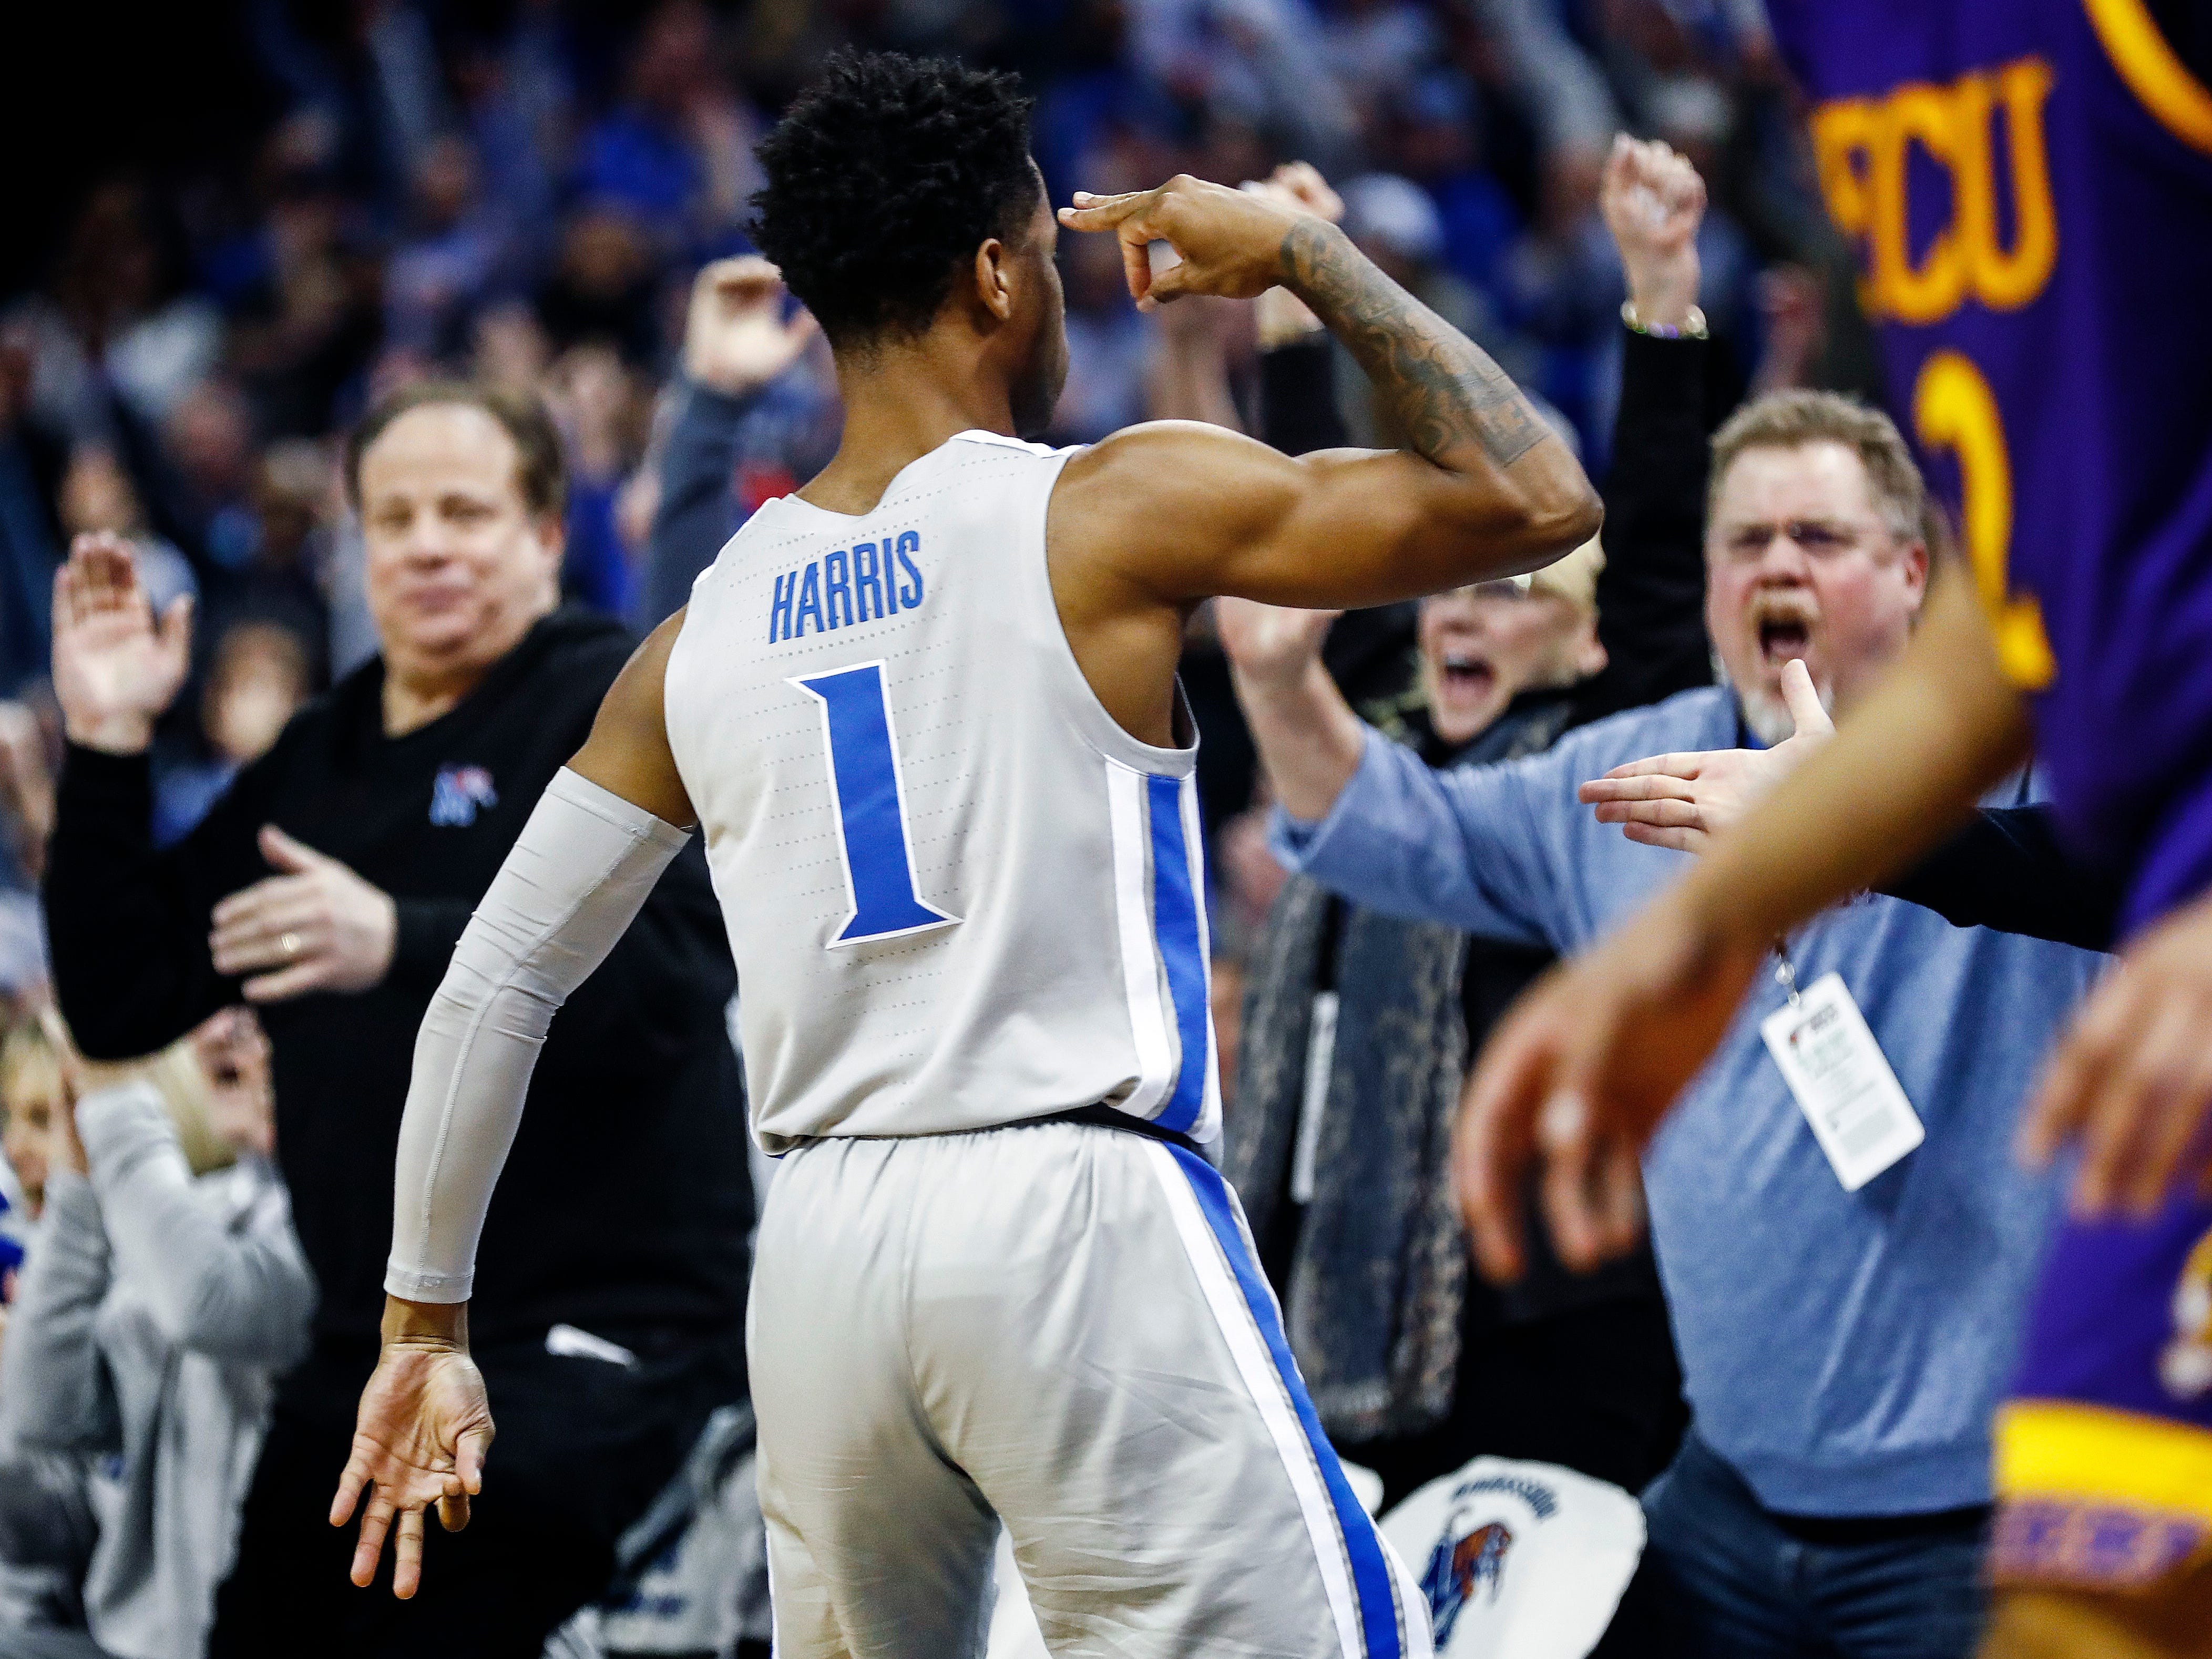 Memphis guard Tyler Harris celebrates a made 3-pointer against ECU during action at the FedExForum, Thursday, January 10, 2019.